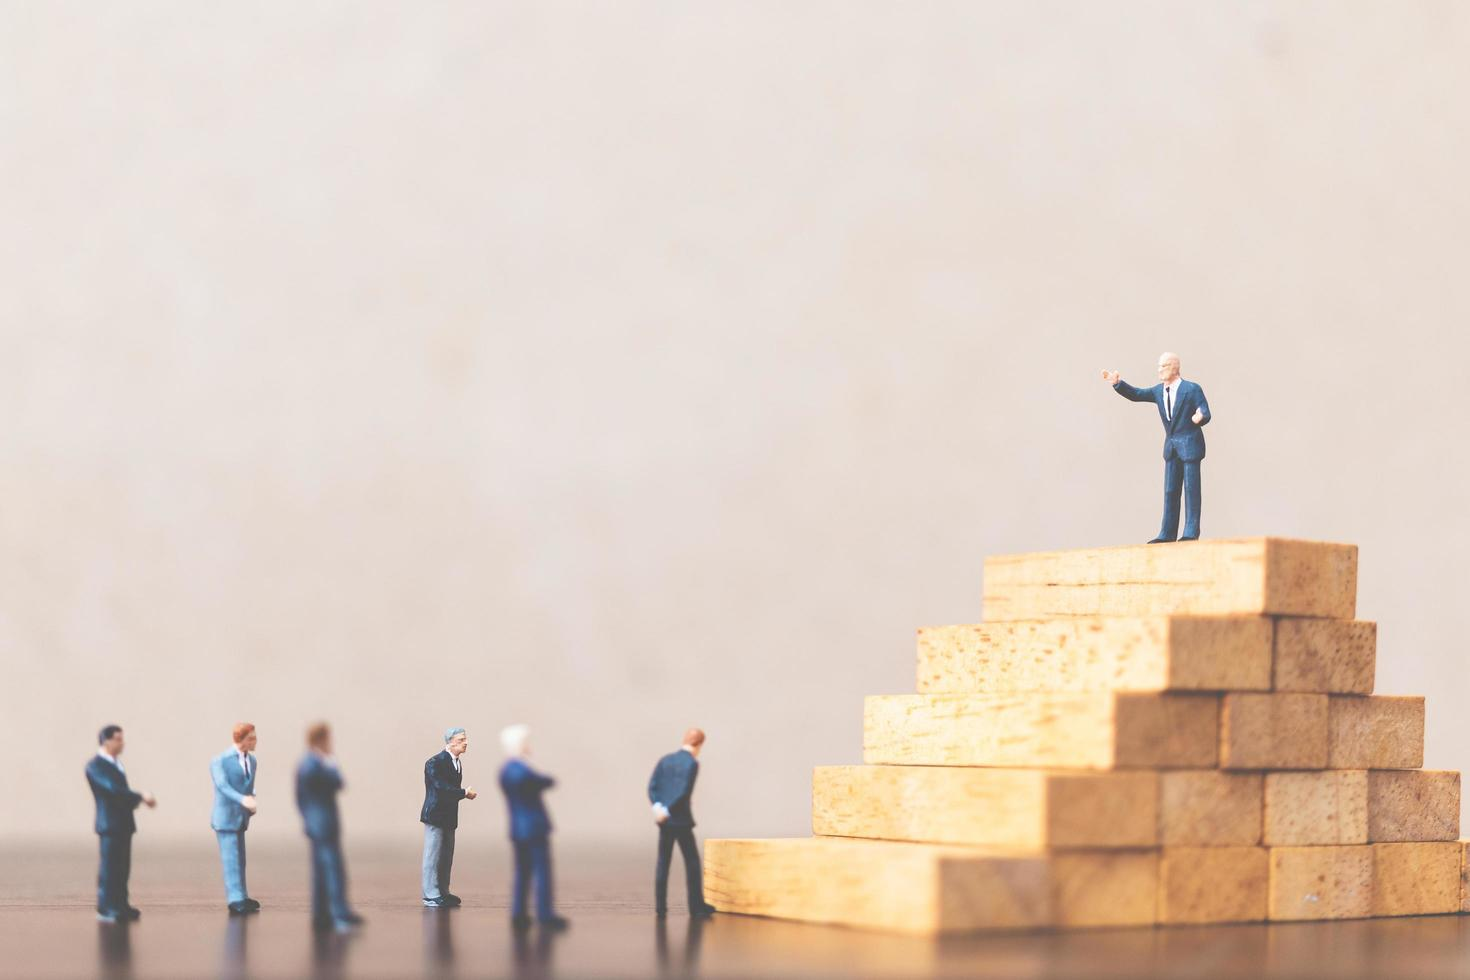 Miniature businessmen standing on a wooden block, successful business leader and teamwork concept photo